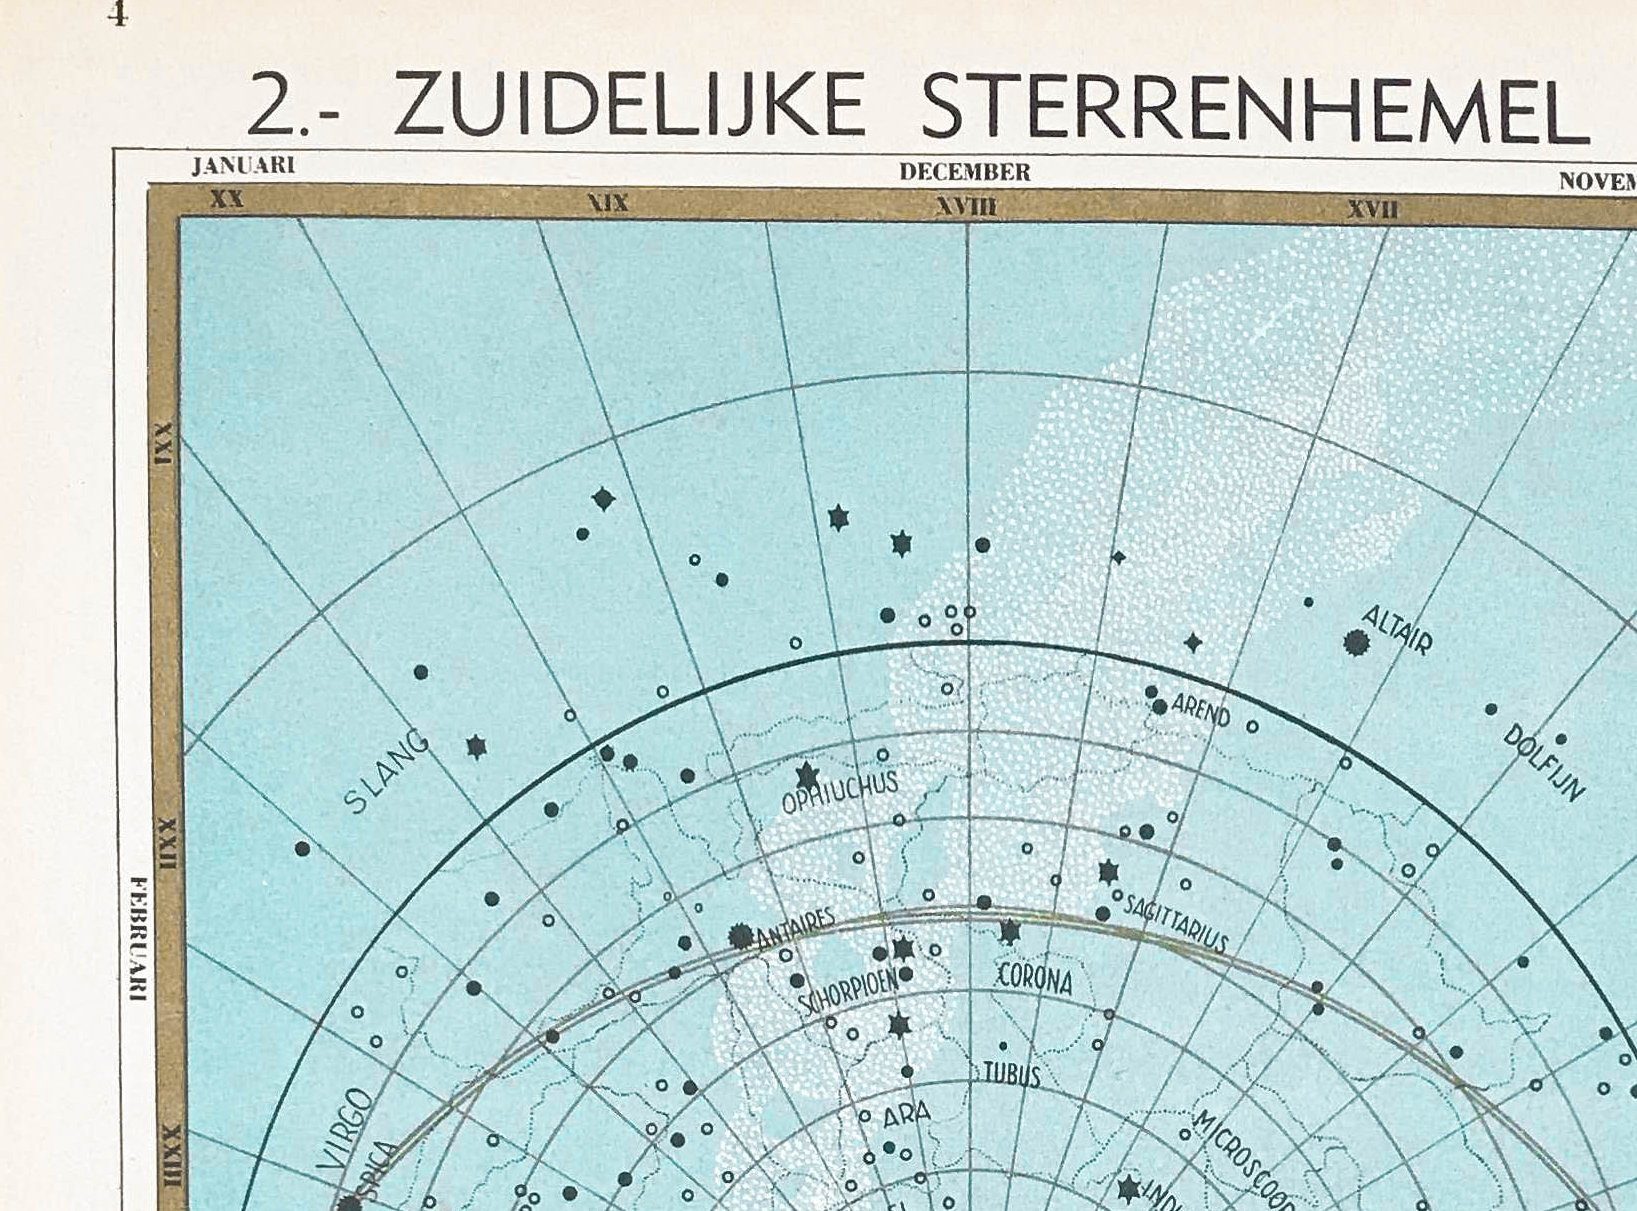 Zuidelijke Sterrenhemel - 1939 - World of Maps & Travel